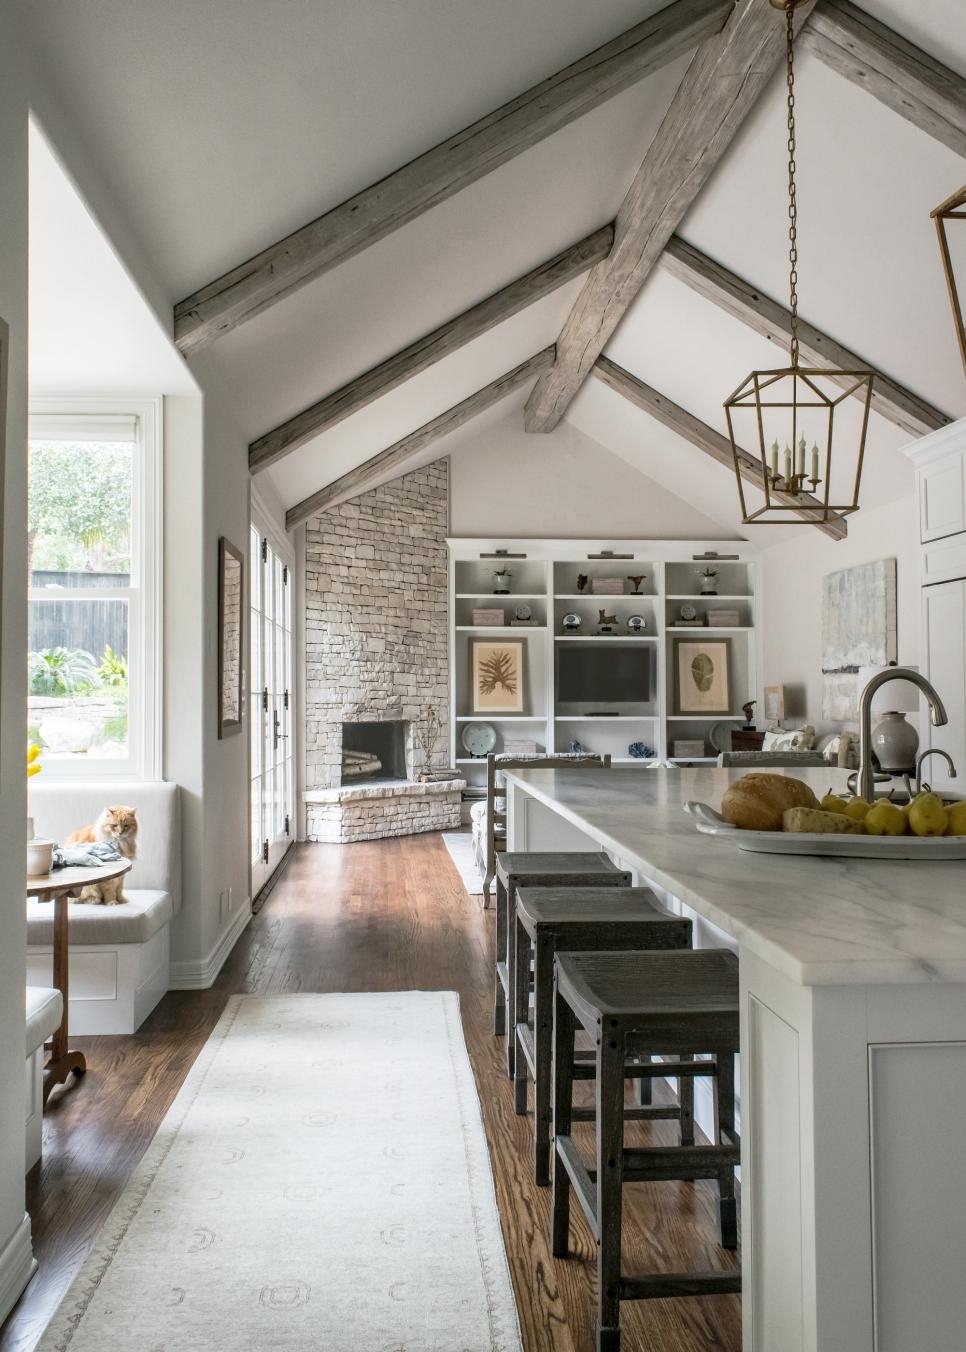 White Contemporary Kitchen With Vaulted Ceilings HGTV Faces Of Design HGTV